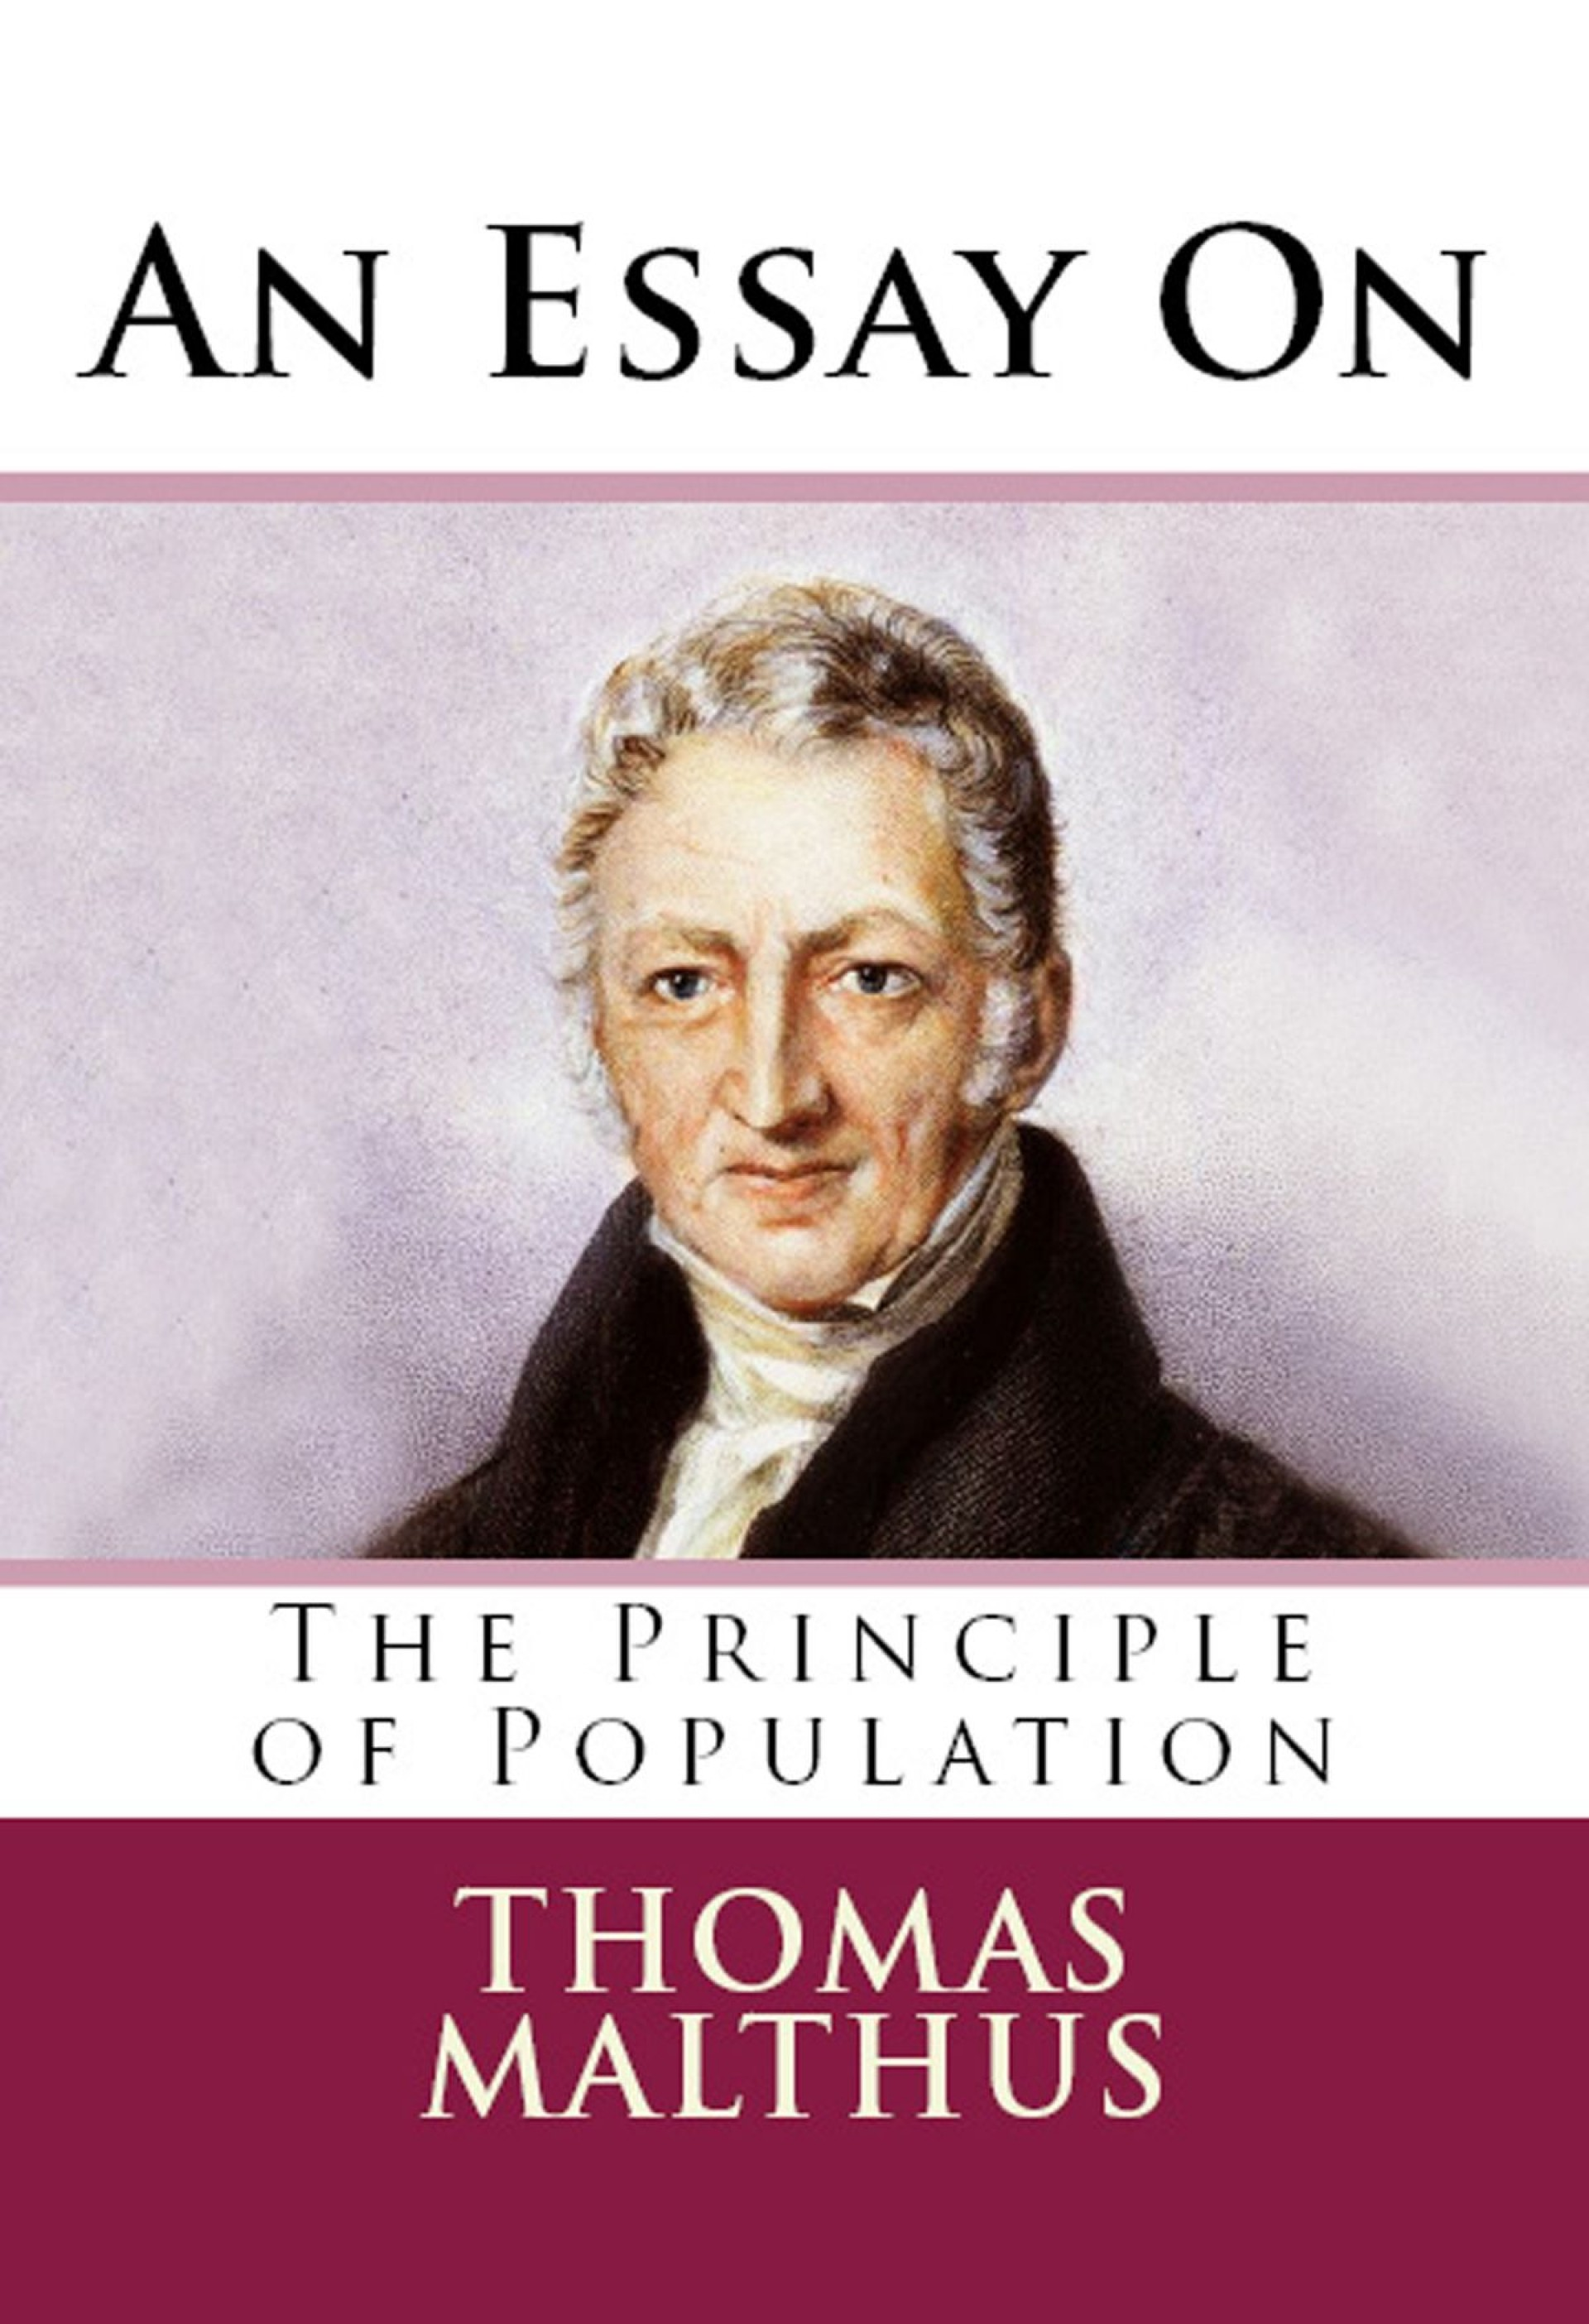 014 An Essay On The Principle Of Population Example Fascinating By Thomas Malthus Pdf In Concluded Which Following 1920